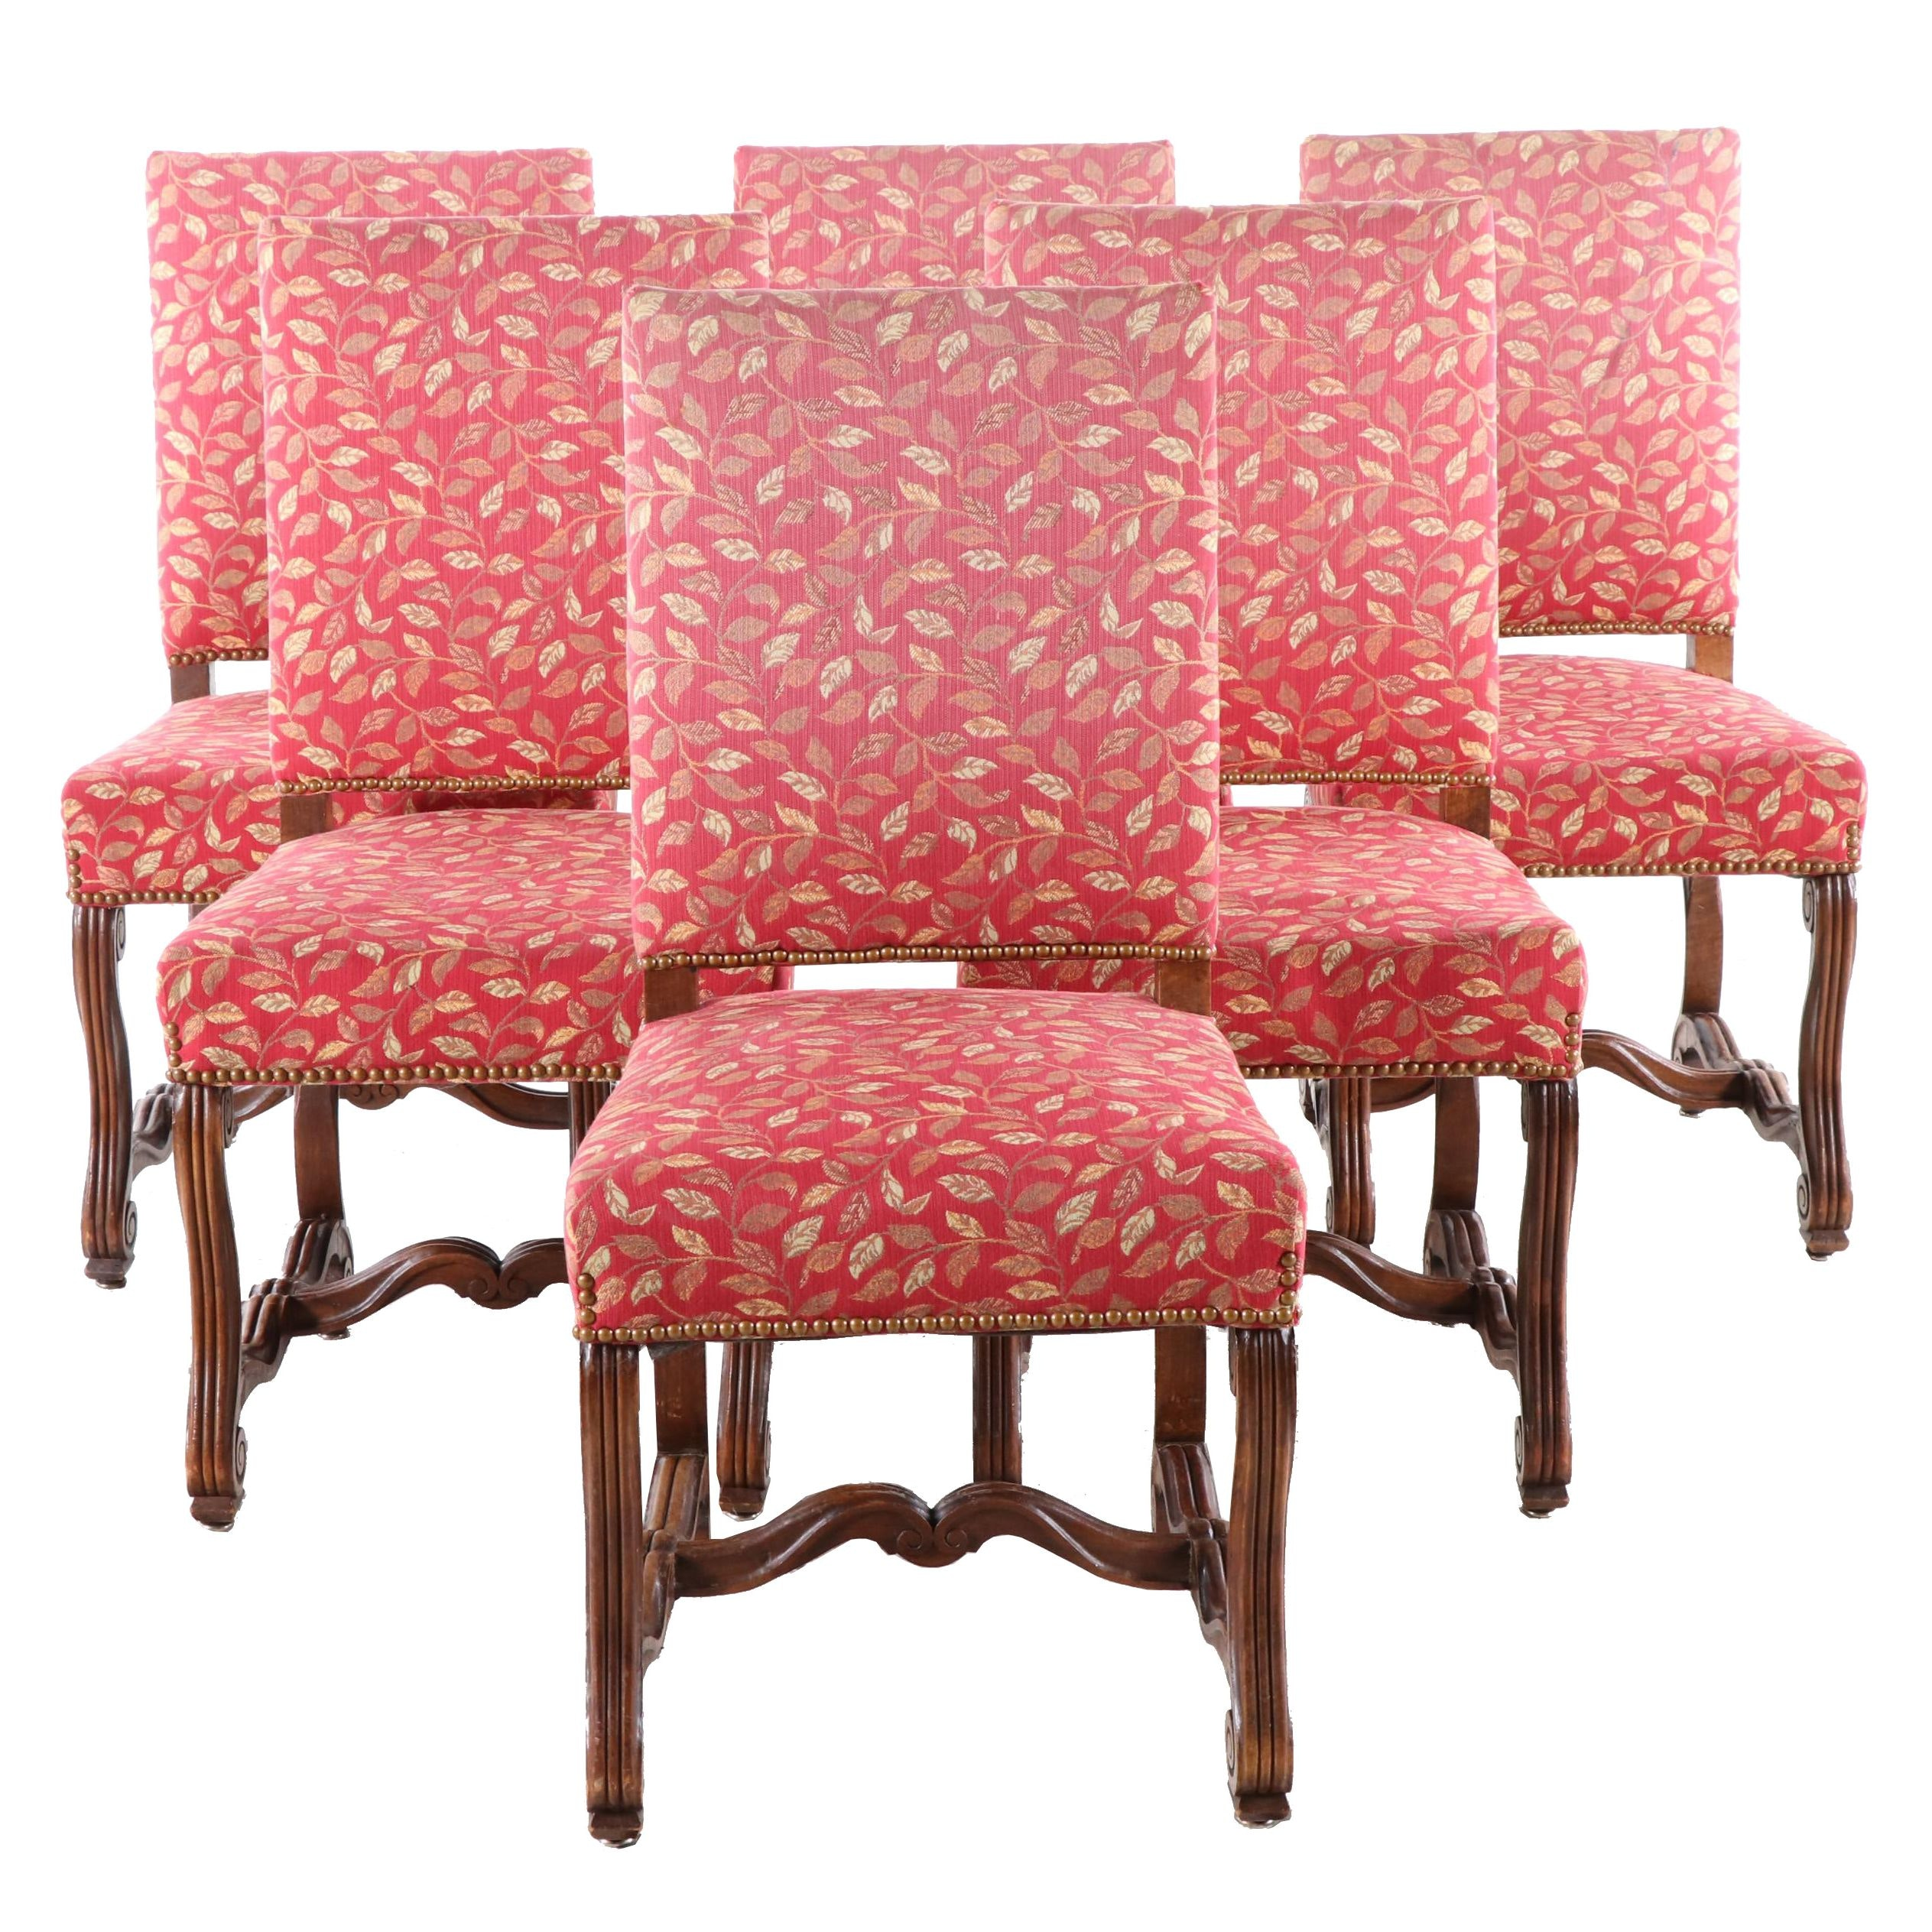 Six Renaissance Revival Style Dining Chairs, 20th Century